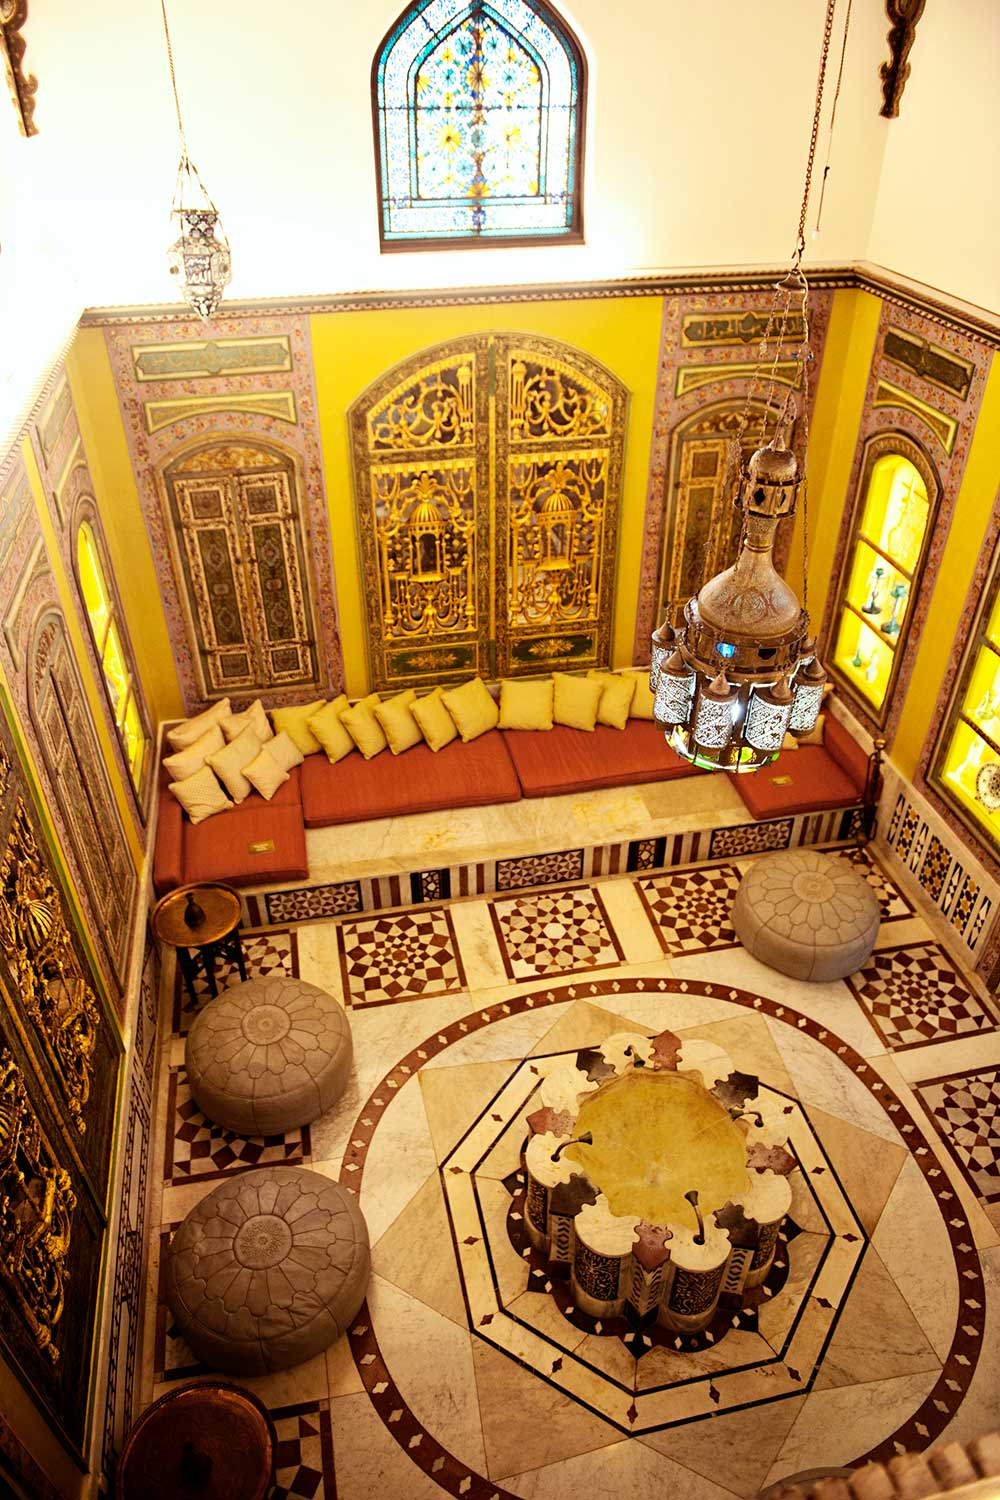 view looking down into room of Shangri La Turkish room